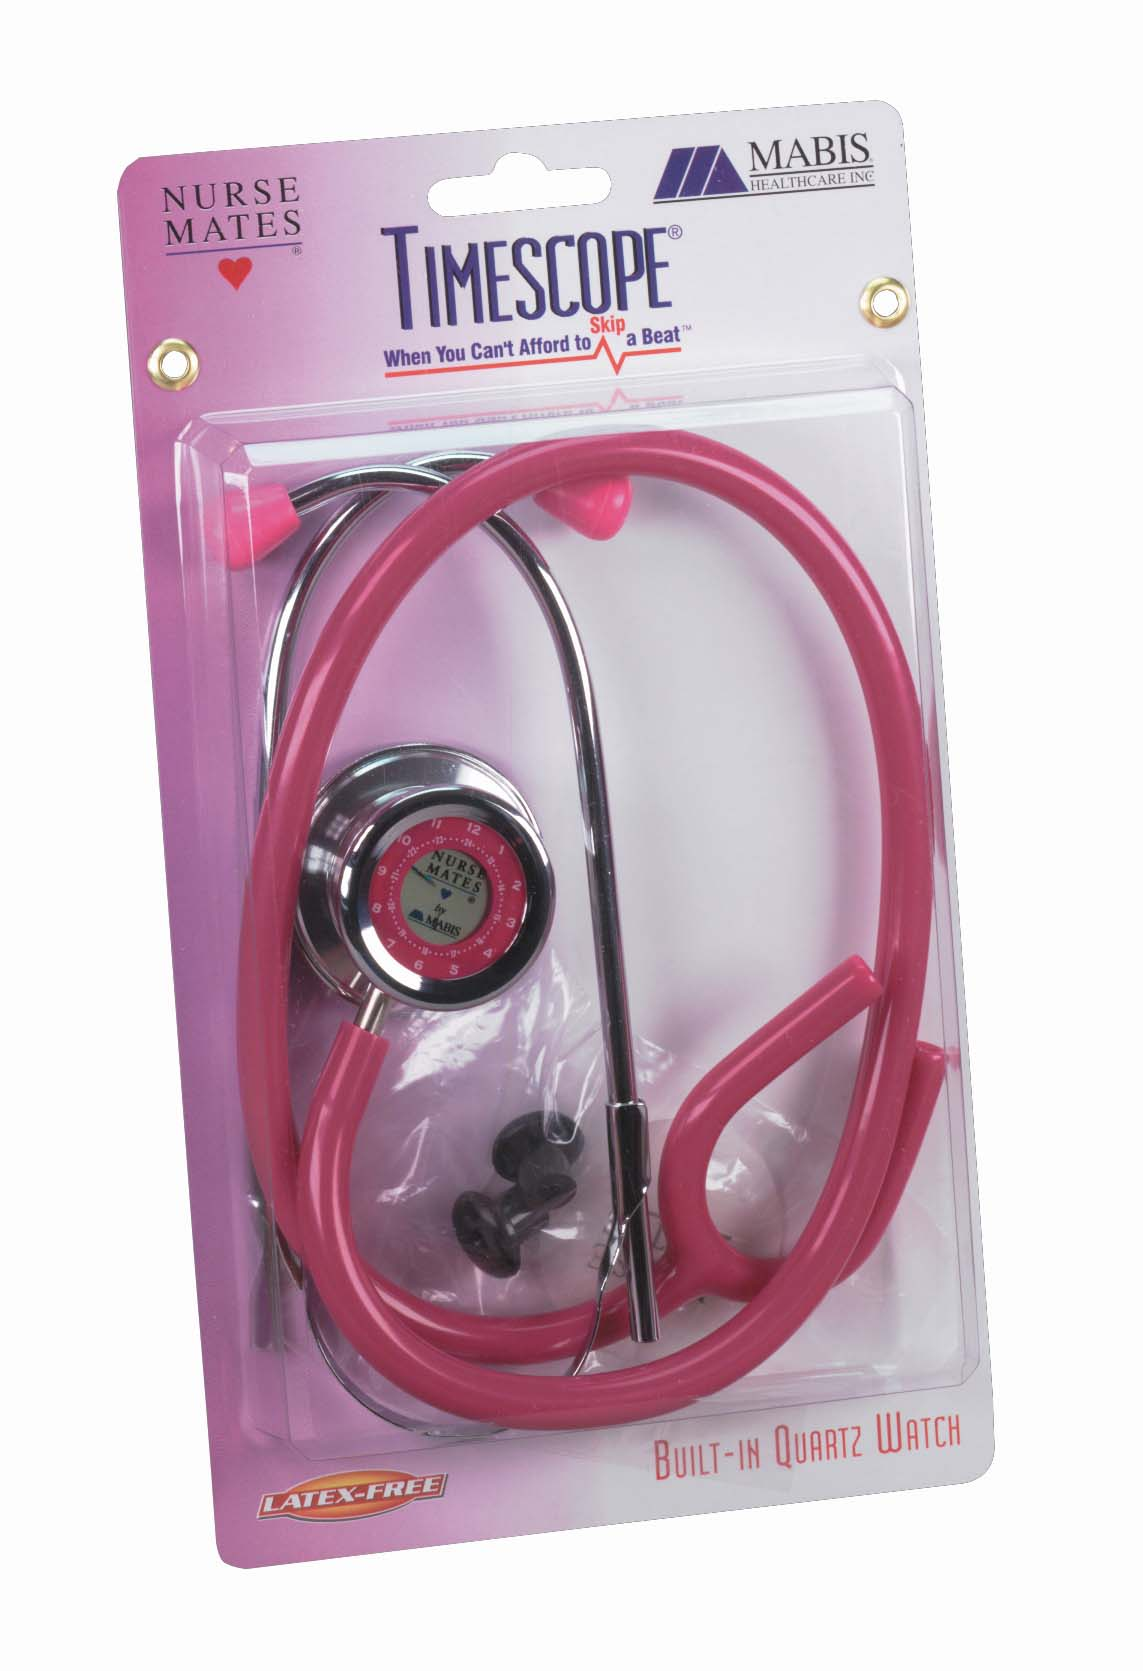 nurse-mates-timescope-stethoscope-adult-slider-pack-hunter-green-10-450-250-lr-2.jpg